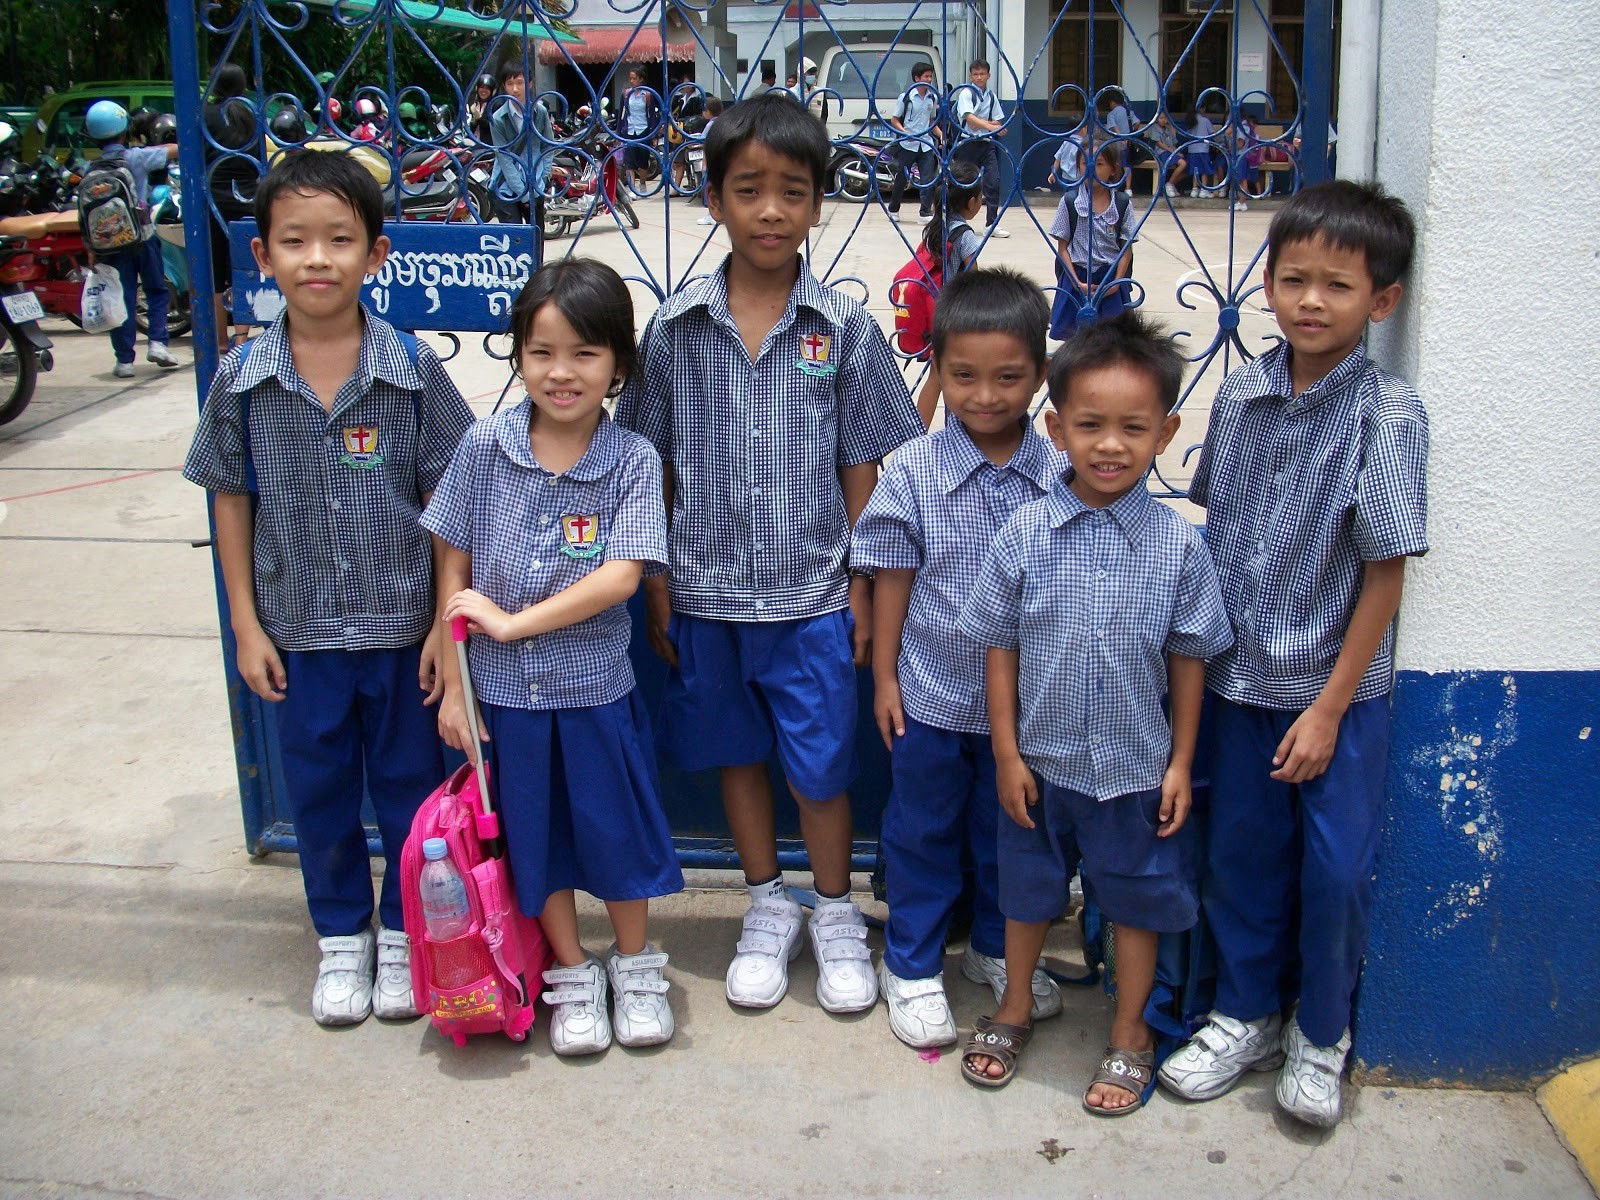 Sponsored students attend Christian schools in the city for a better education